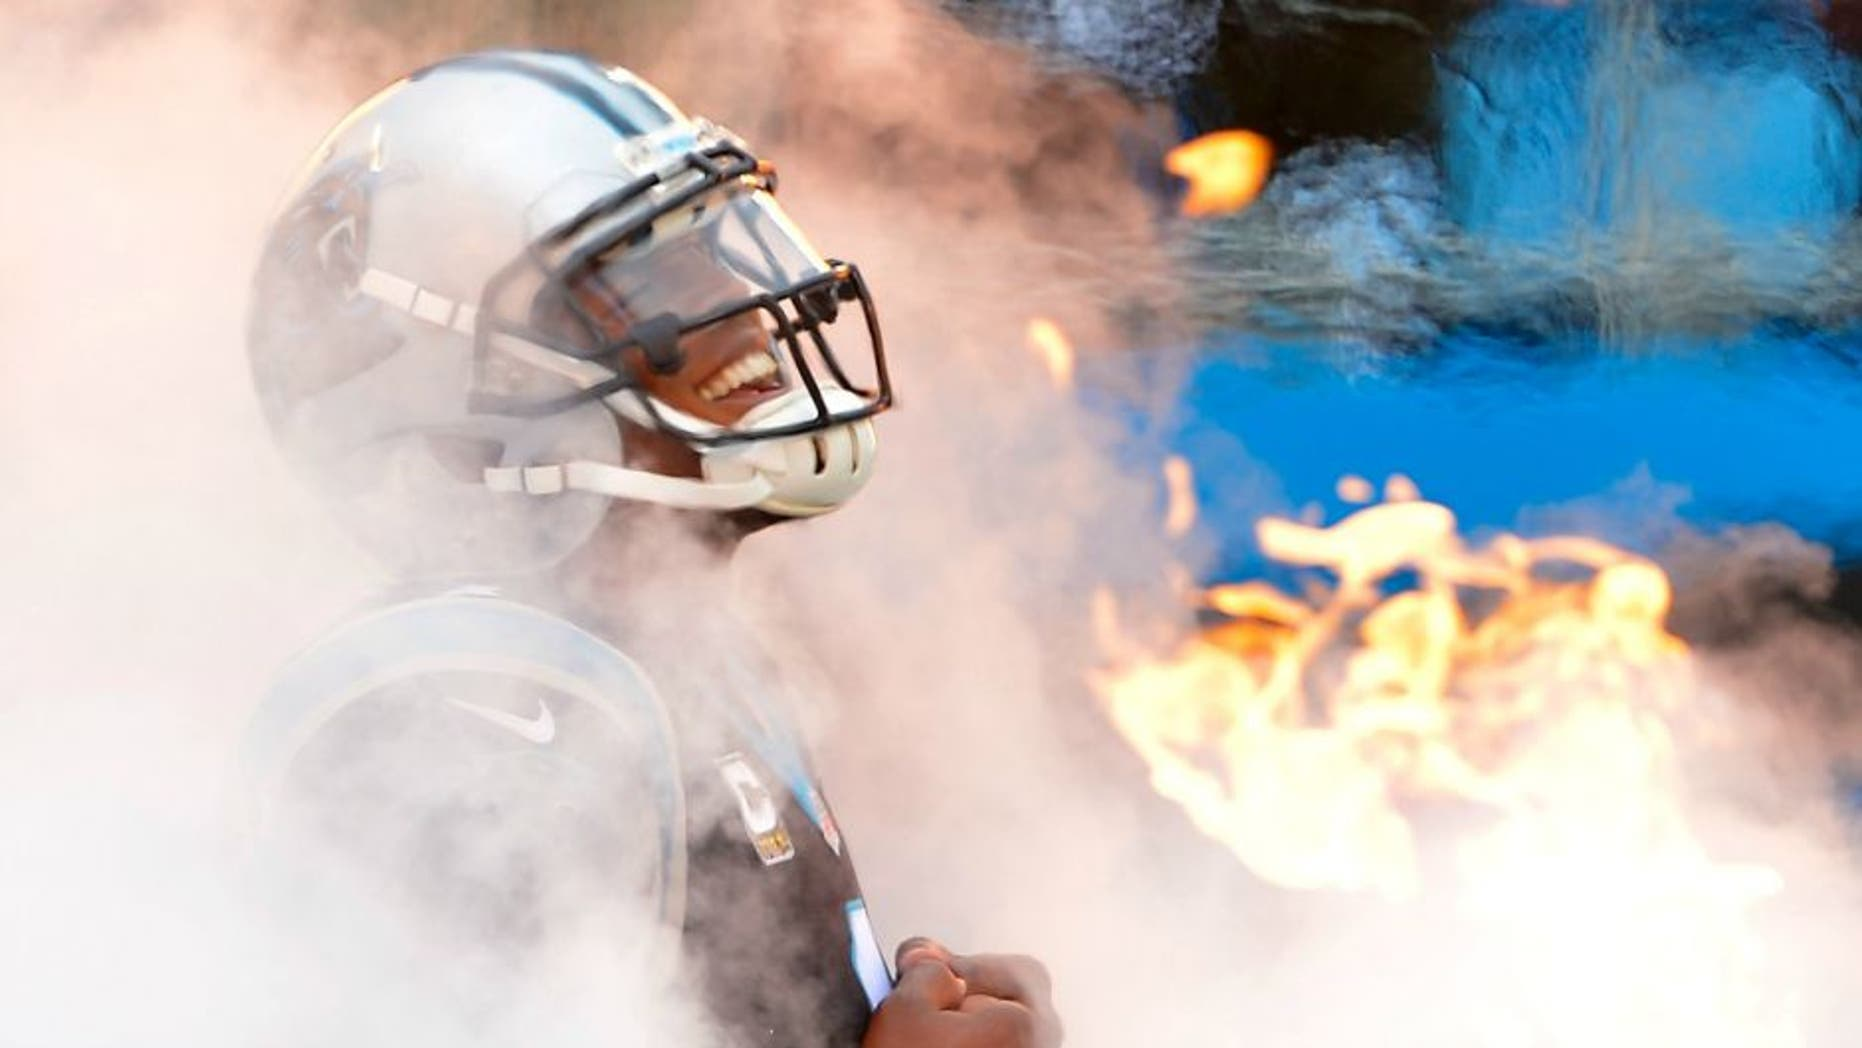 CHARLOTTE, NC - NOVEMBER 13: Cam Newton #1 of the Carolina Panthers emerges from the tunnel before their game against the Kansas City Chiefs at Bank of America Stadium on November 13, 2016 in Charlotte, North Carolina. (Photo by Grant Halverson/Getty Images)